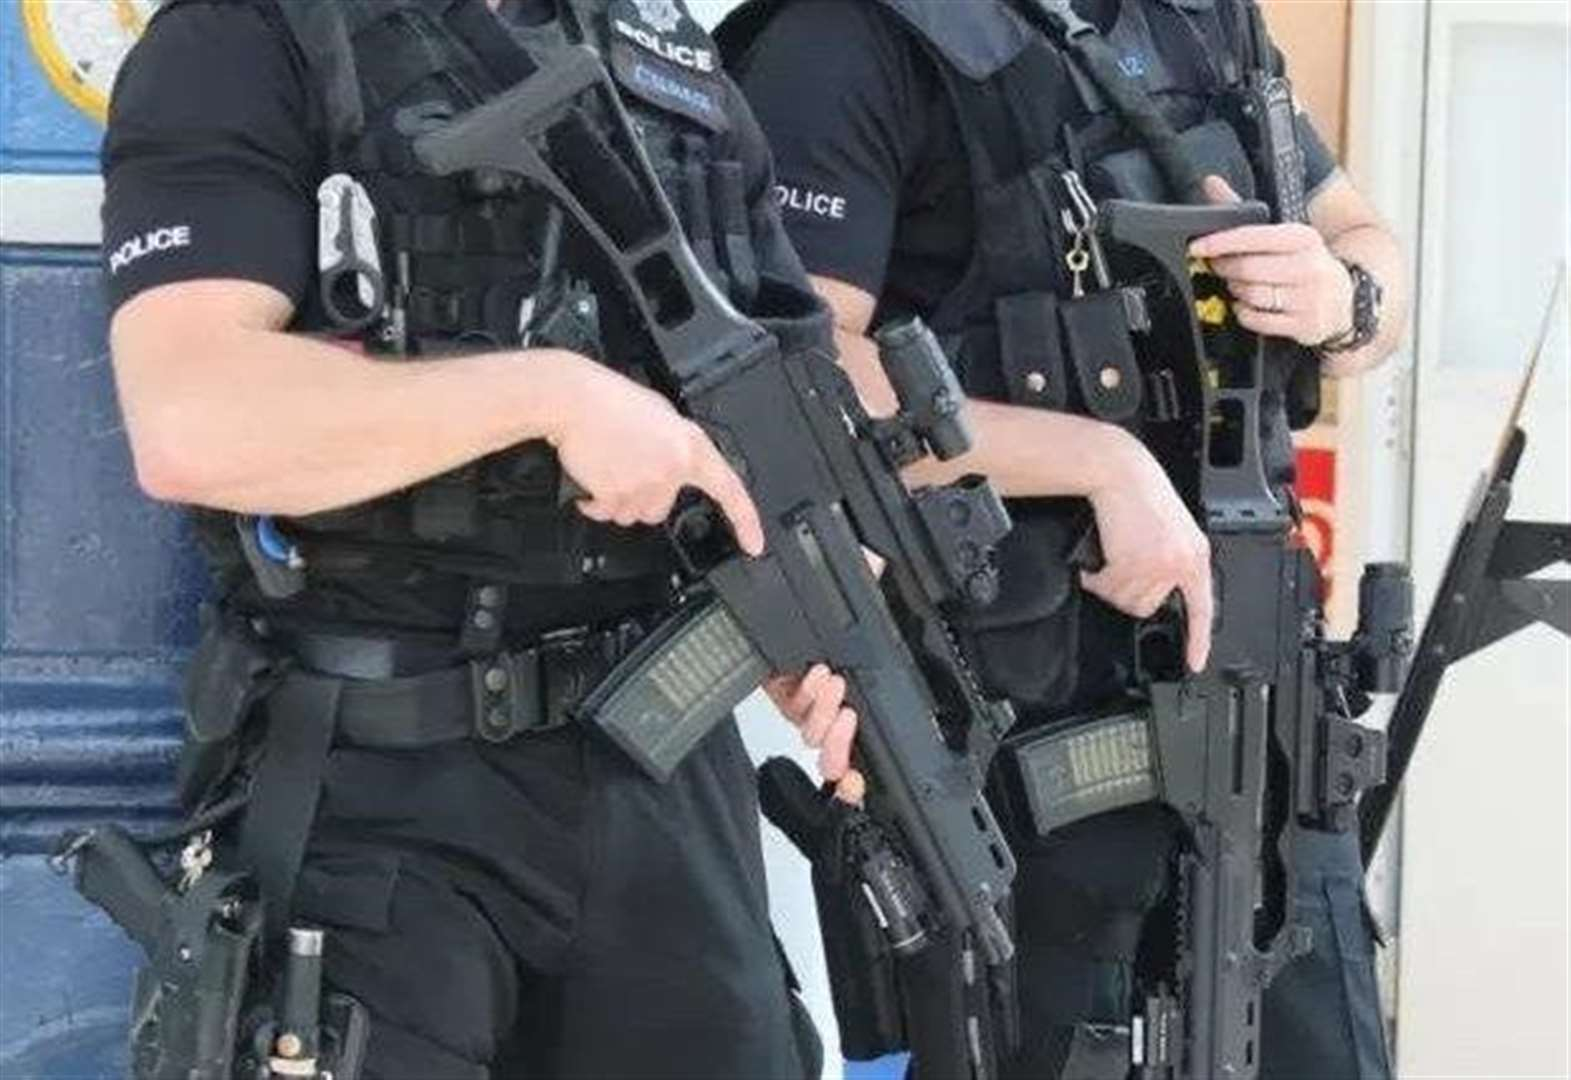 Armed police evacuate park and arrest teen